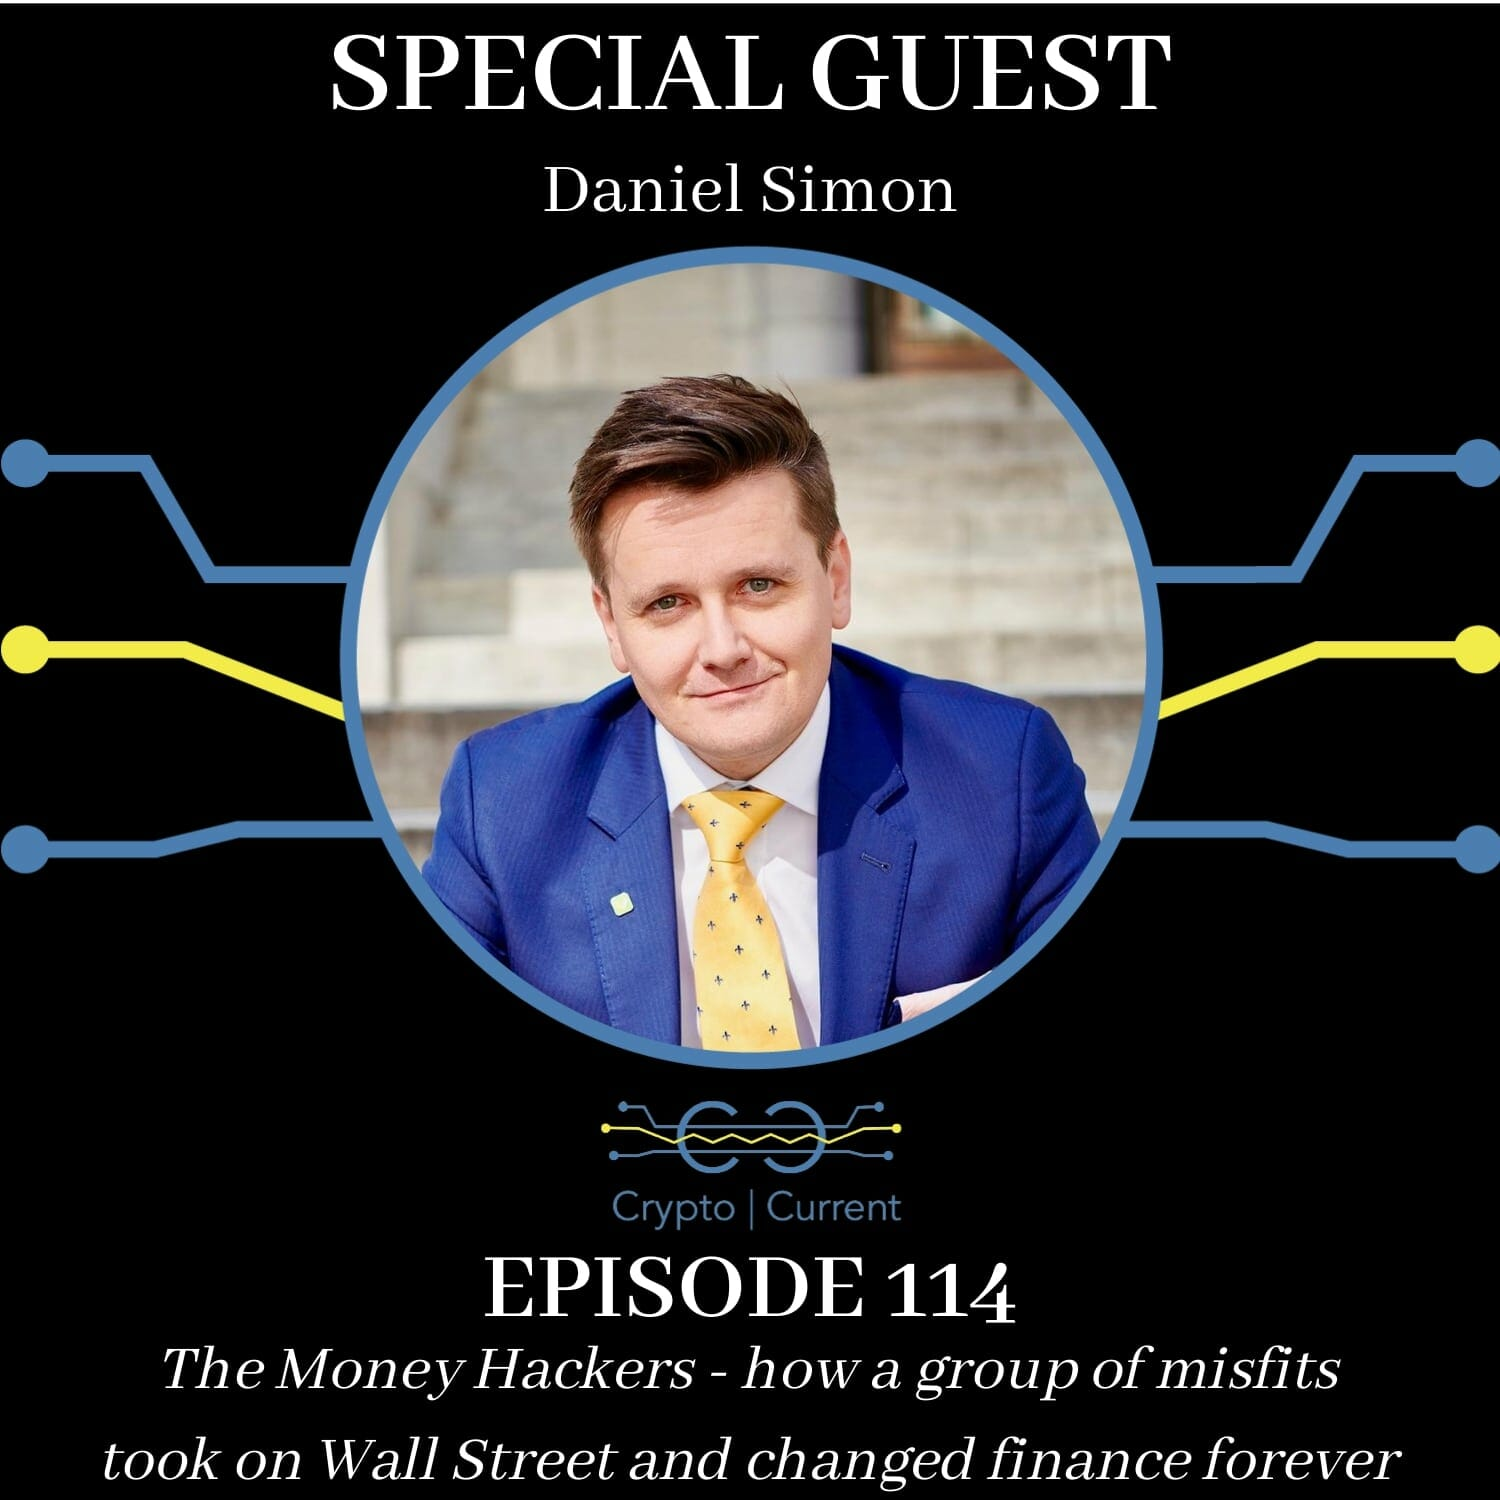 The Money Hackers - How a group of misfits took on wall street and changed finance forever